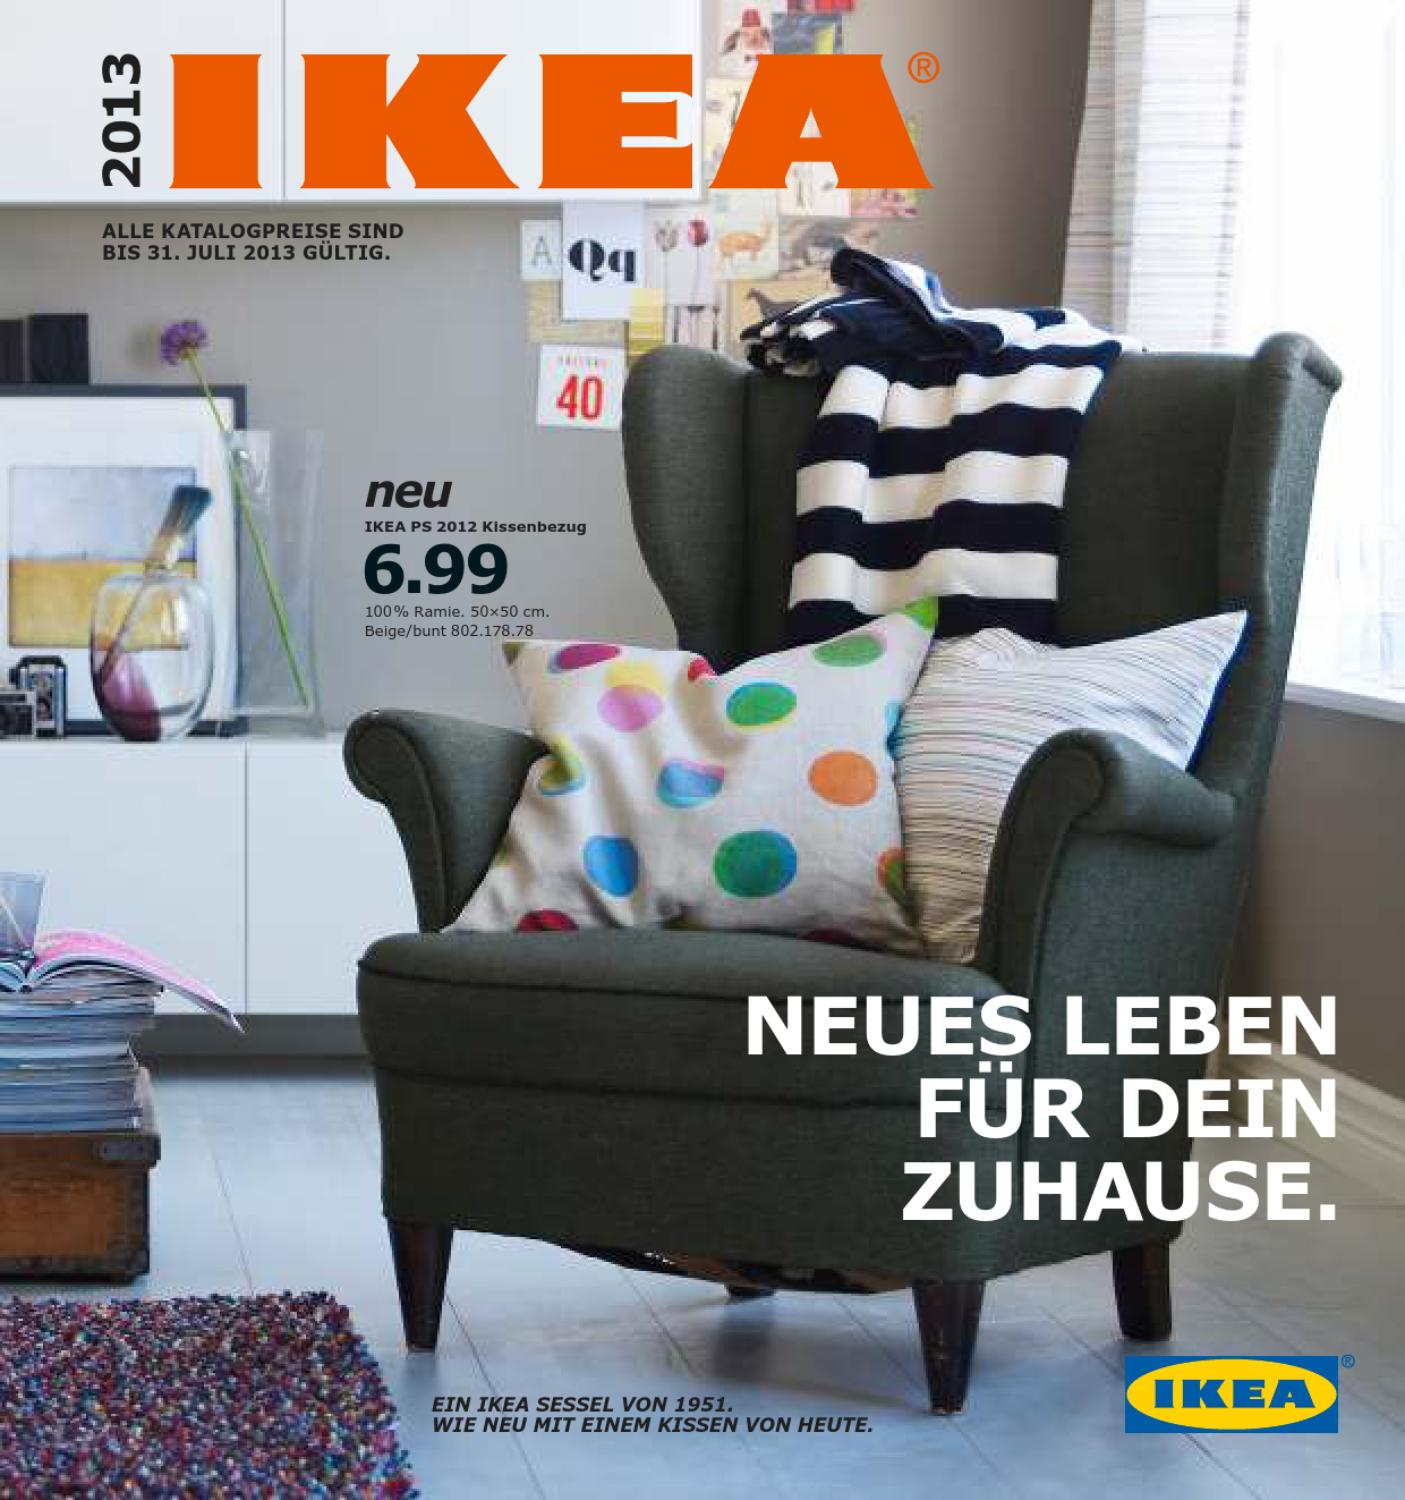 IKEA DE KATALOG 2013 by regio menu - issuu